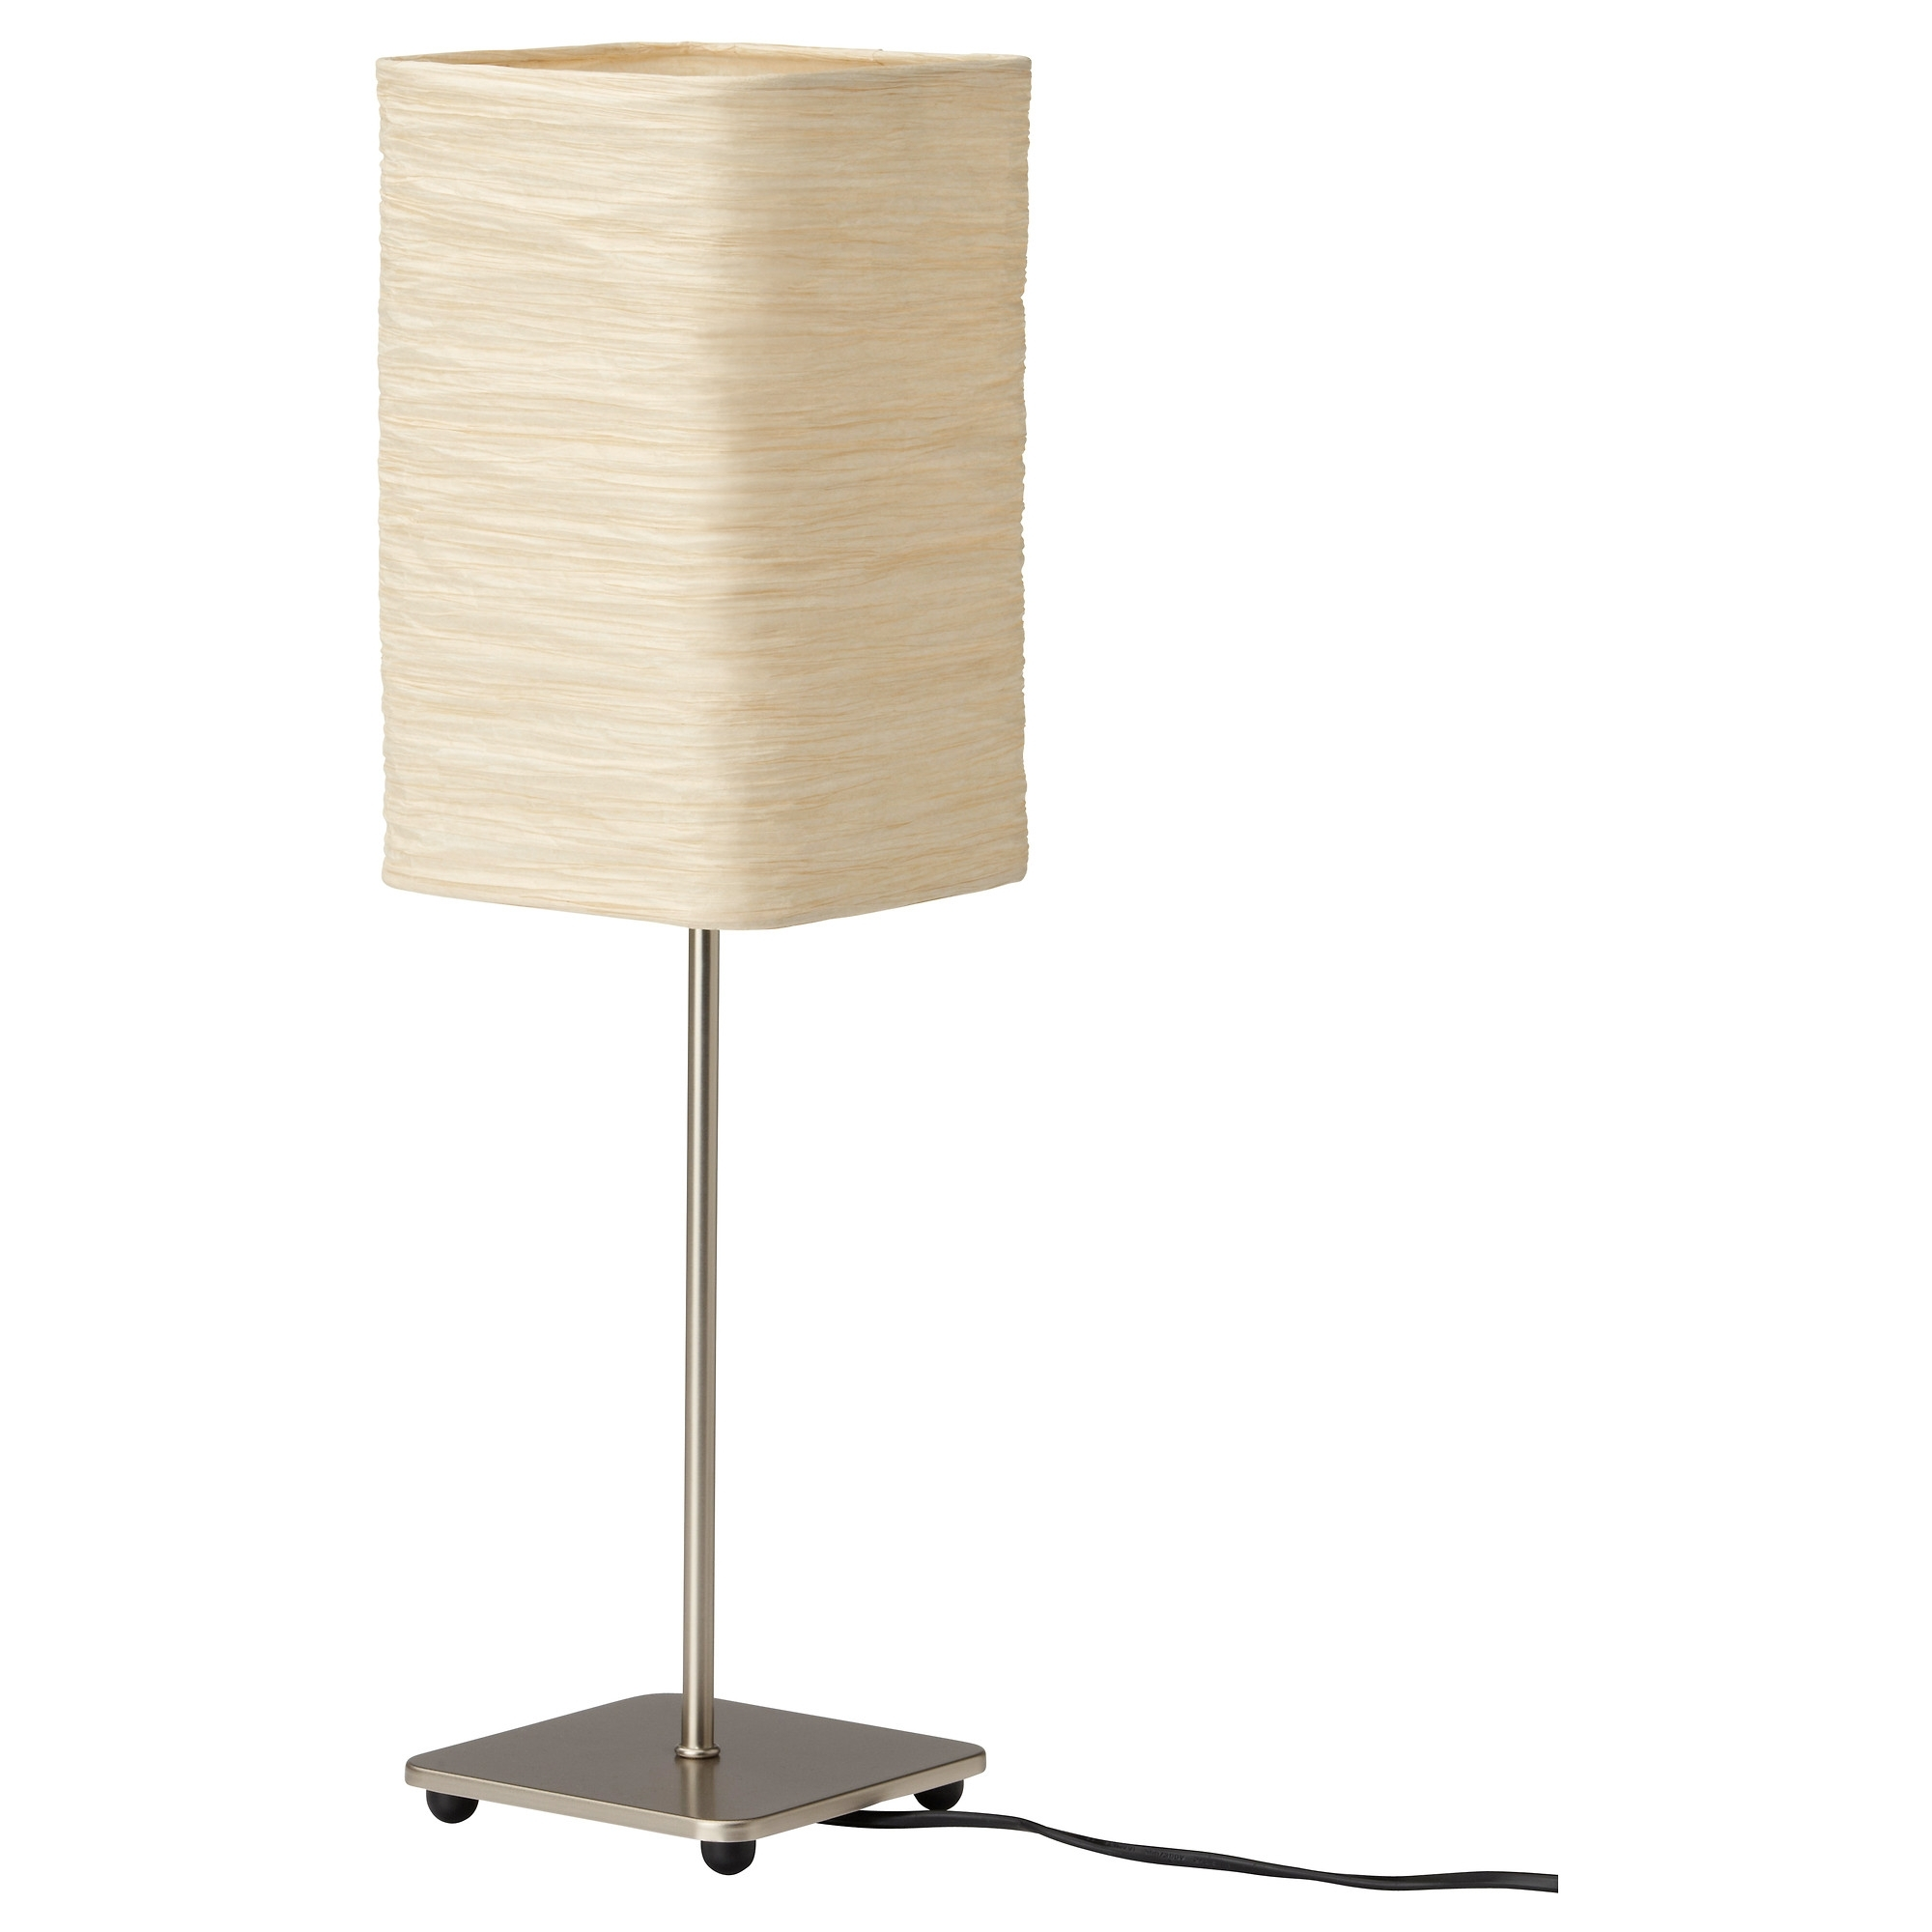 Cordless Table Lamps Ikea ~ Best Inspiration For Table Lamp In Living Room Table Lamps At Ikea (#3 of 15)